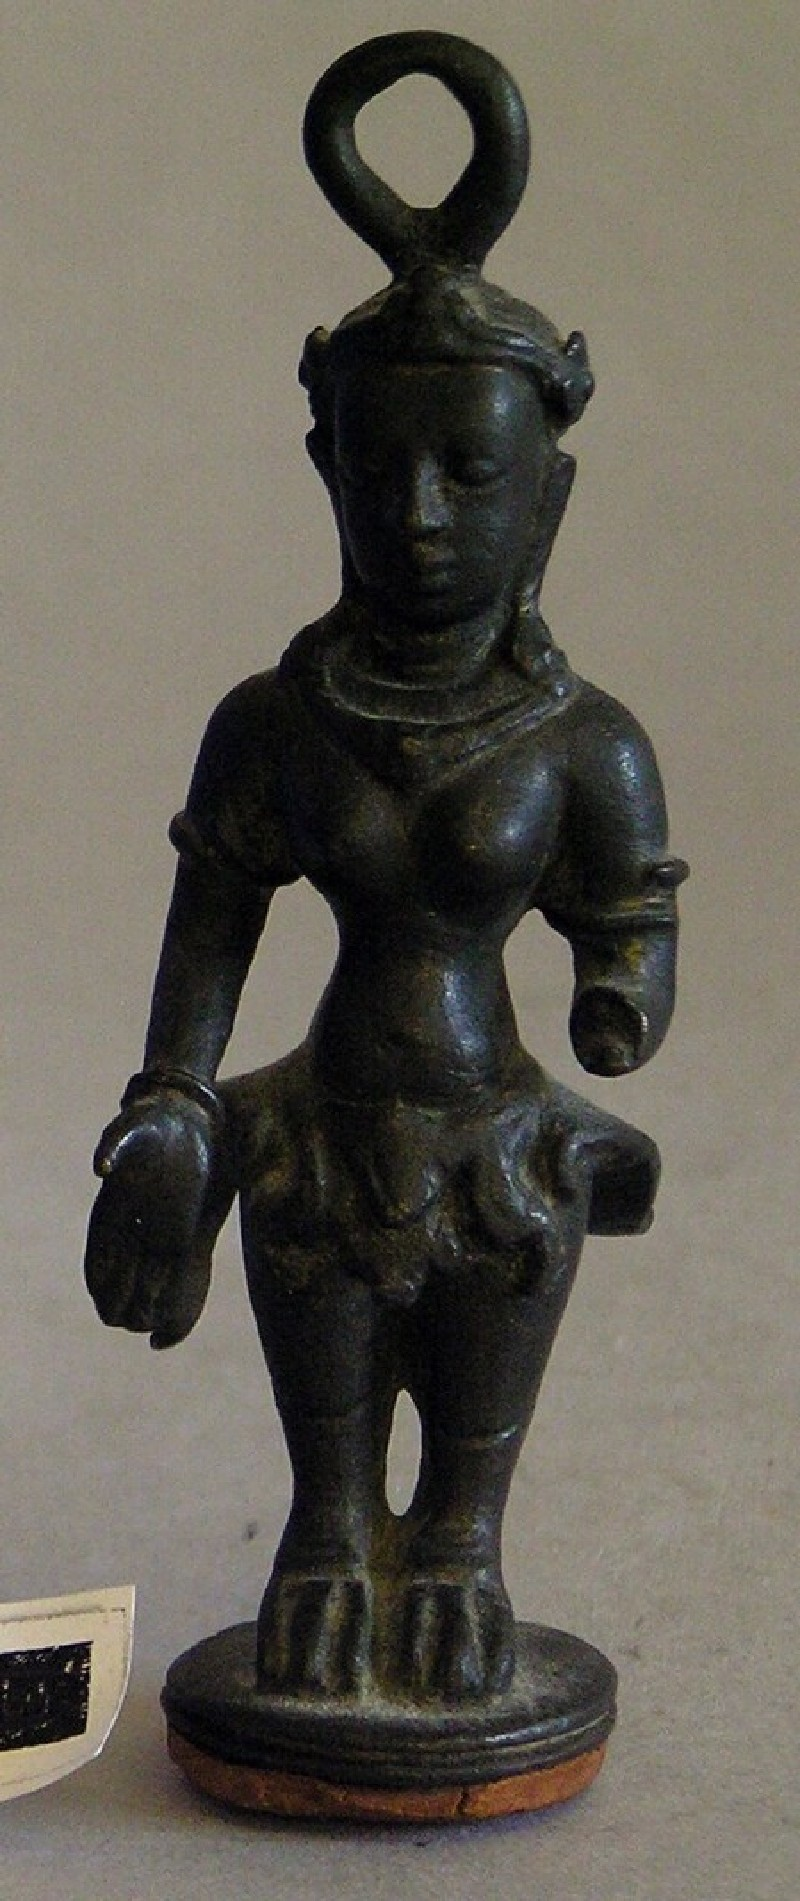 Asparas figure with ring for suspension